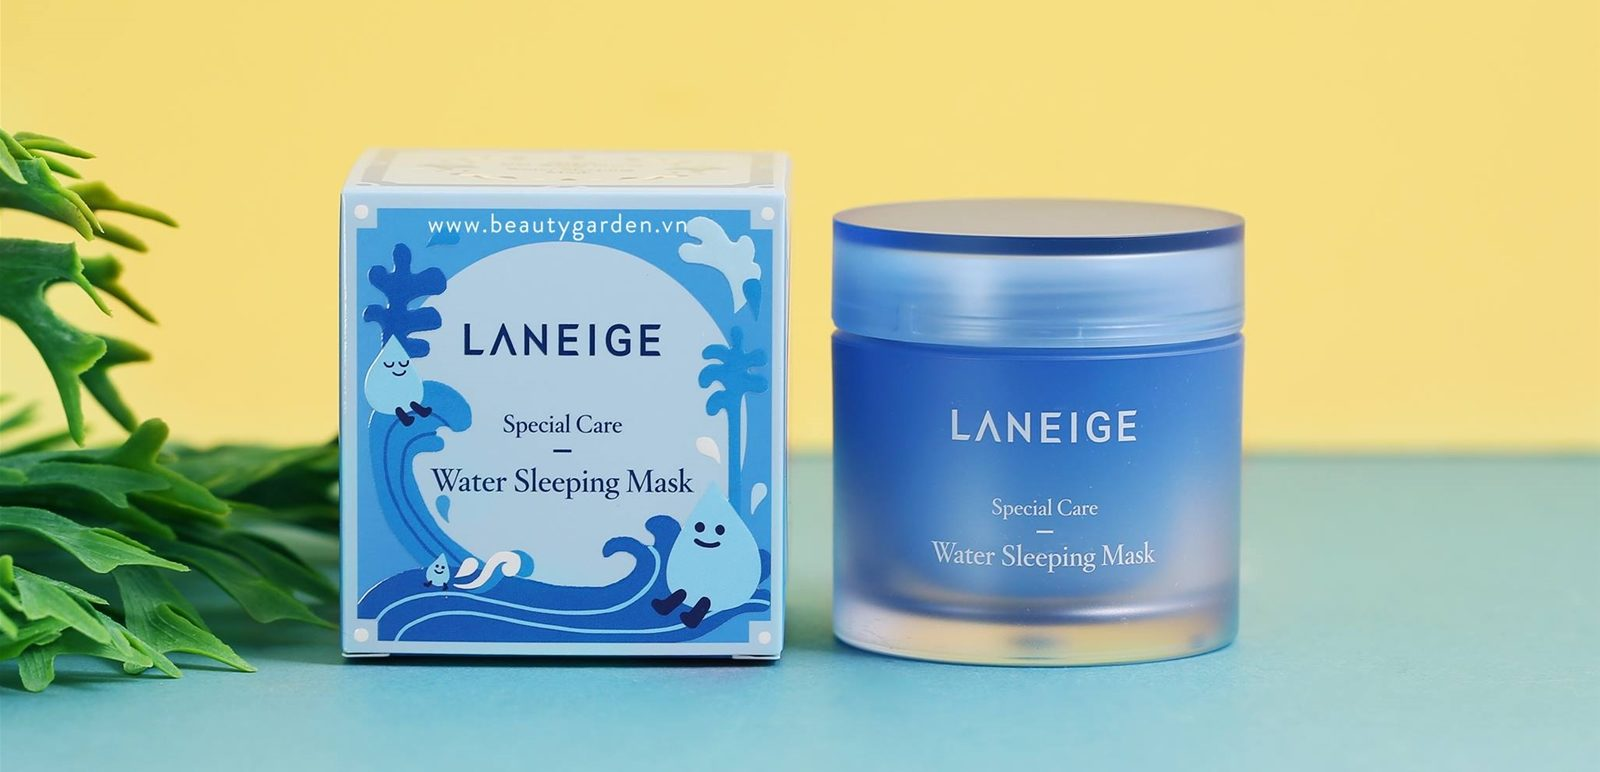 Hype or Not: Laneige Water Sleeping Mask Review